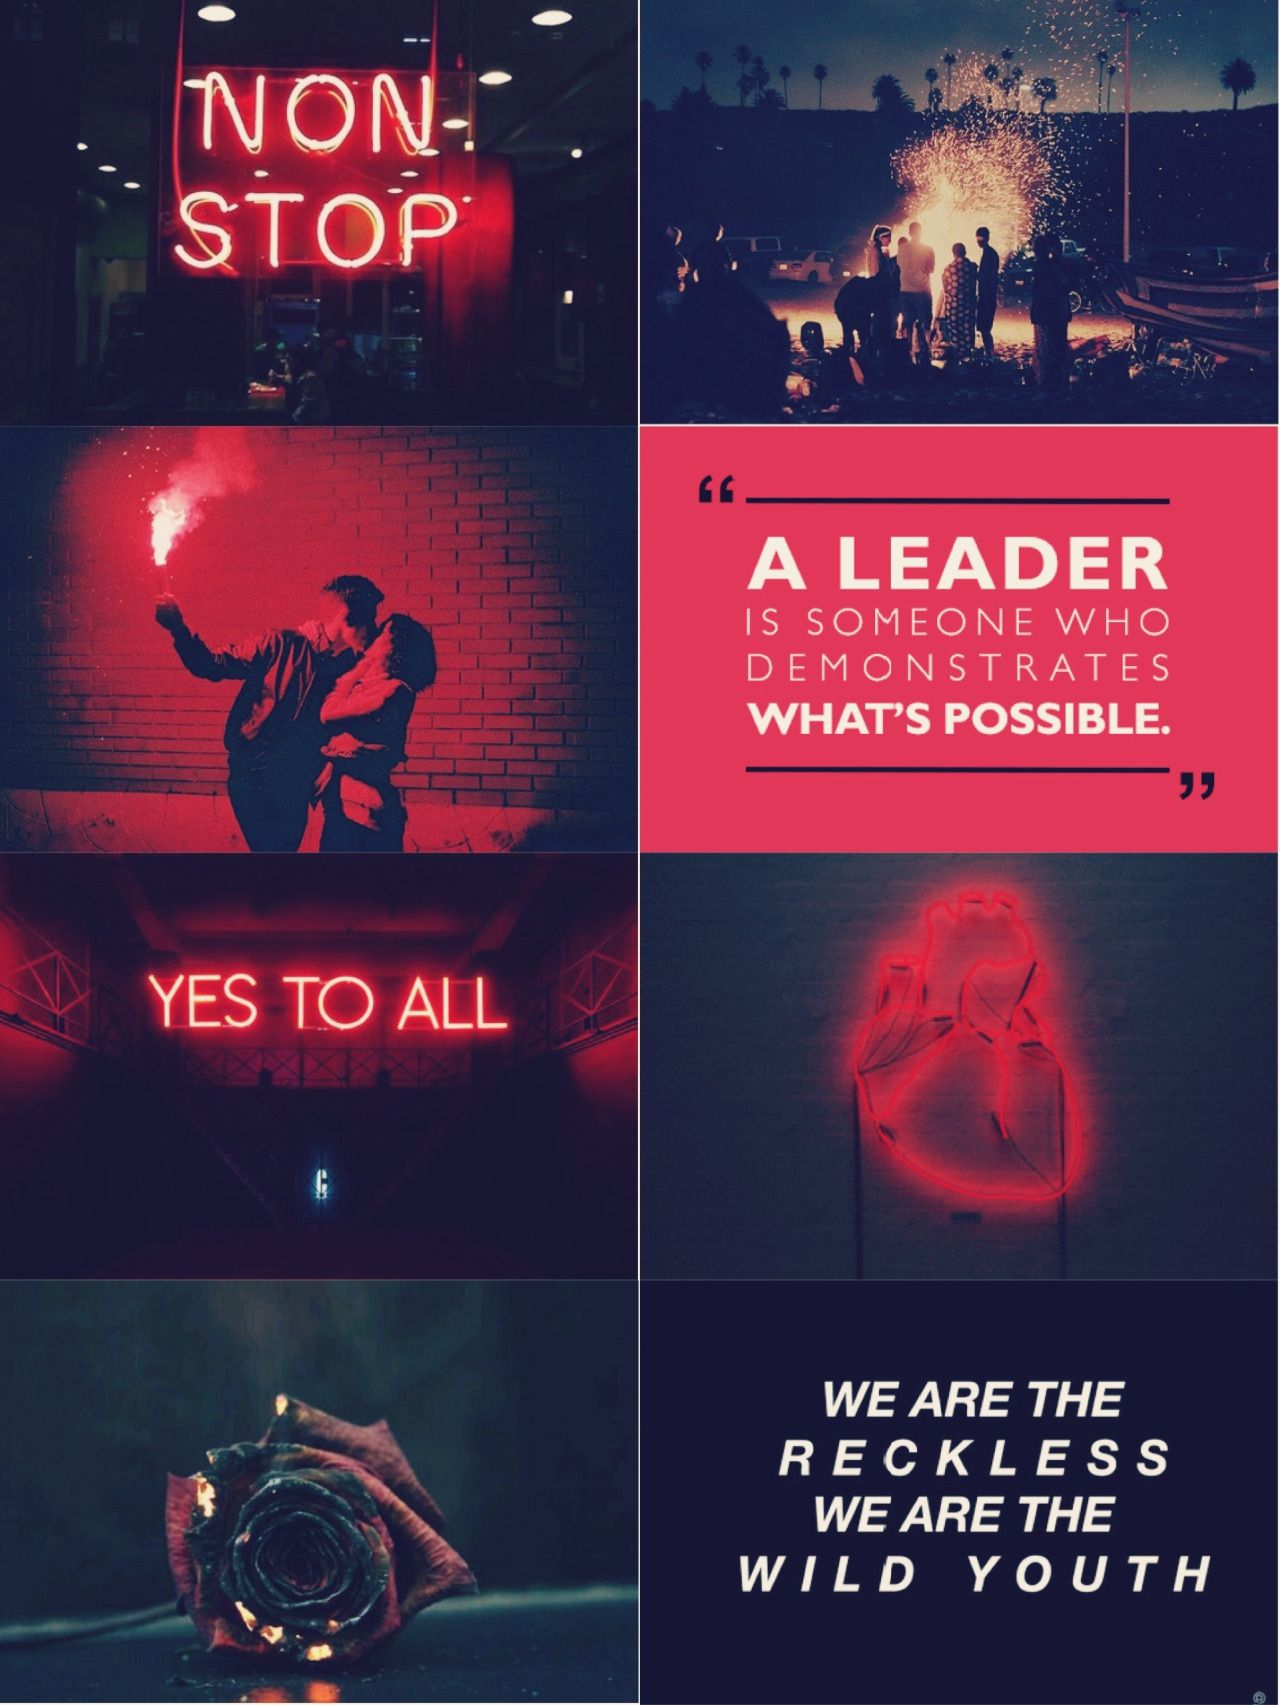 aries aesthetic Tumblr Skeeter Pinterest Aries